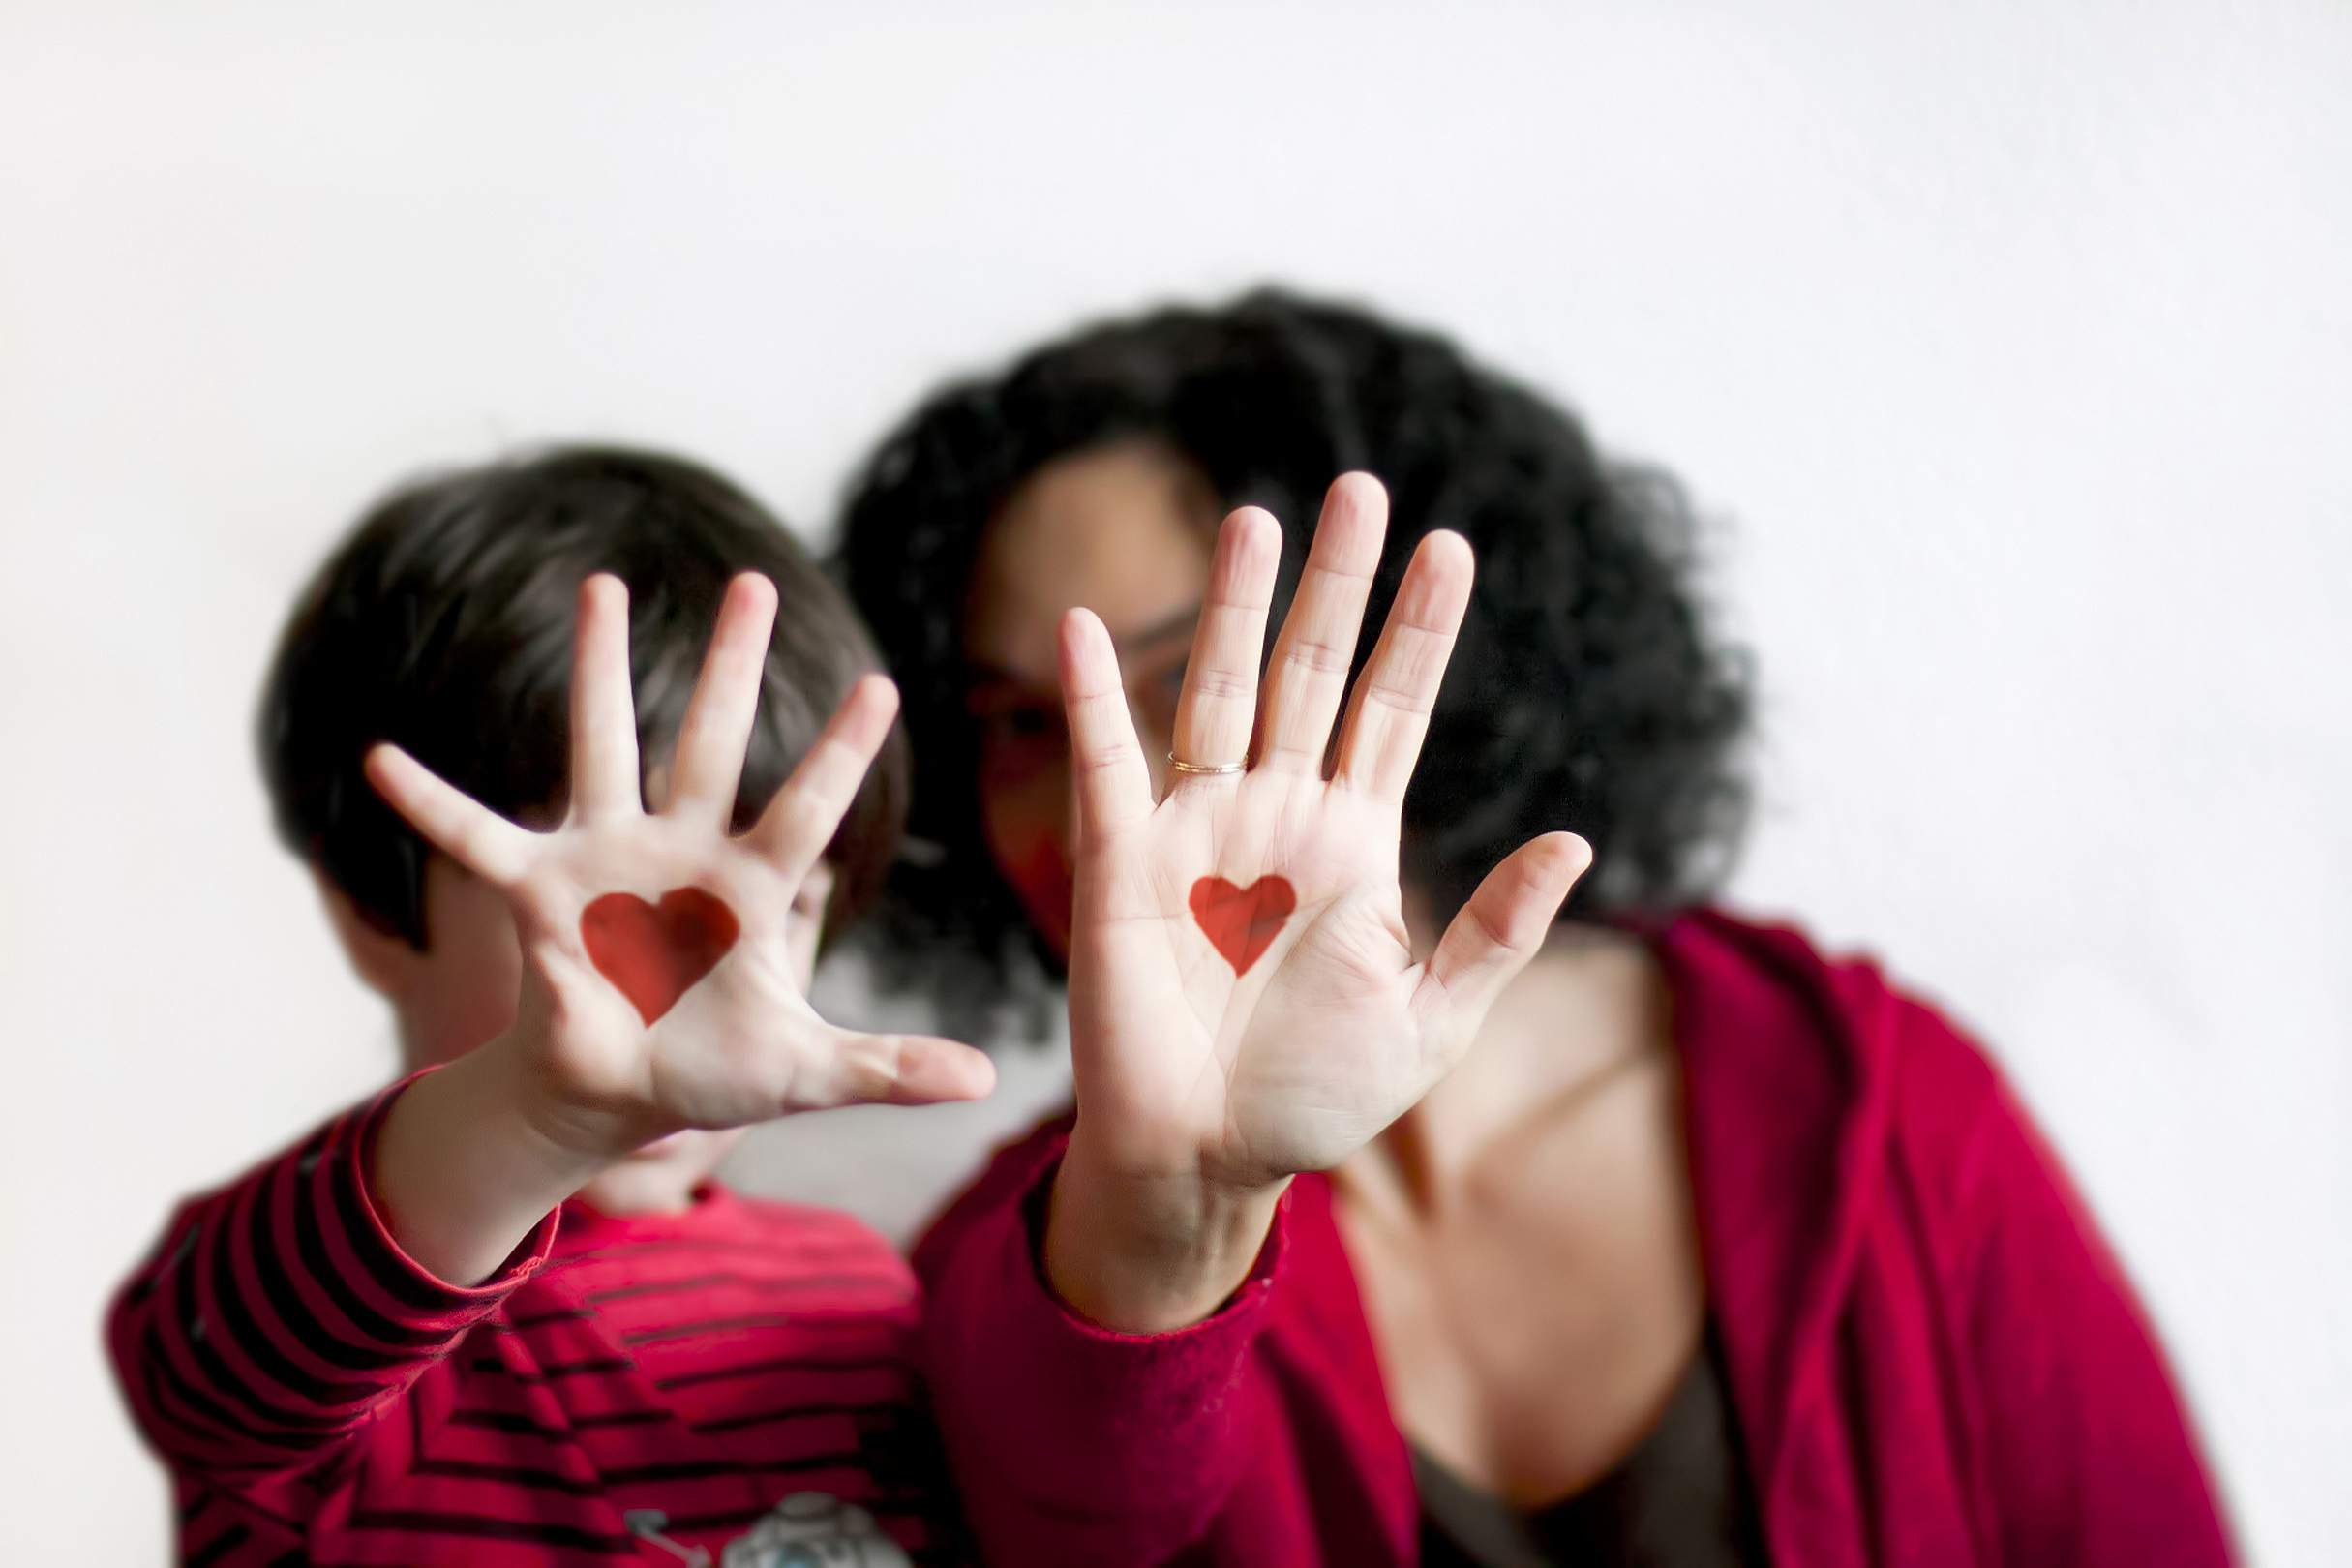 Mother and son with hearts painted on their hands